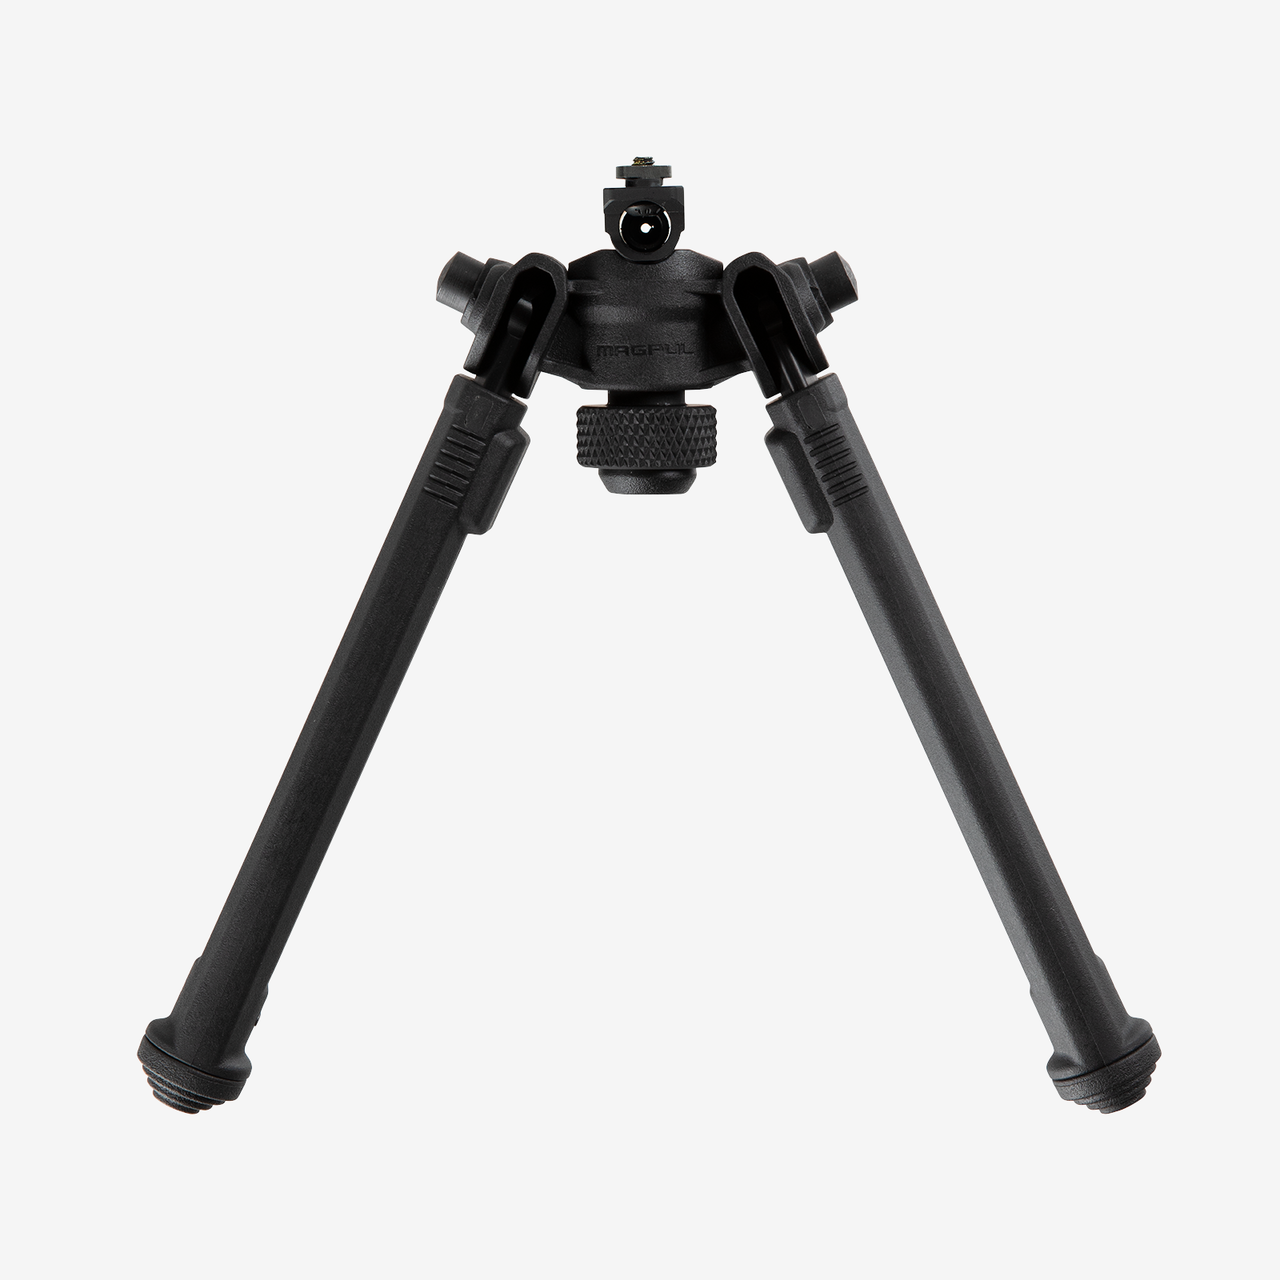 MAGPUL bipod shortest leg extension